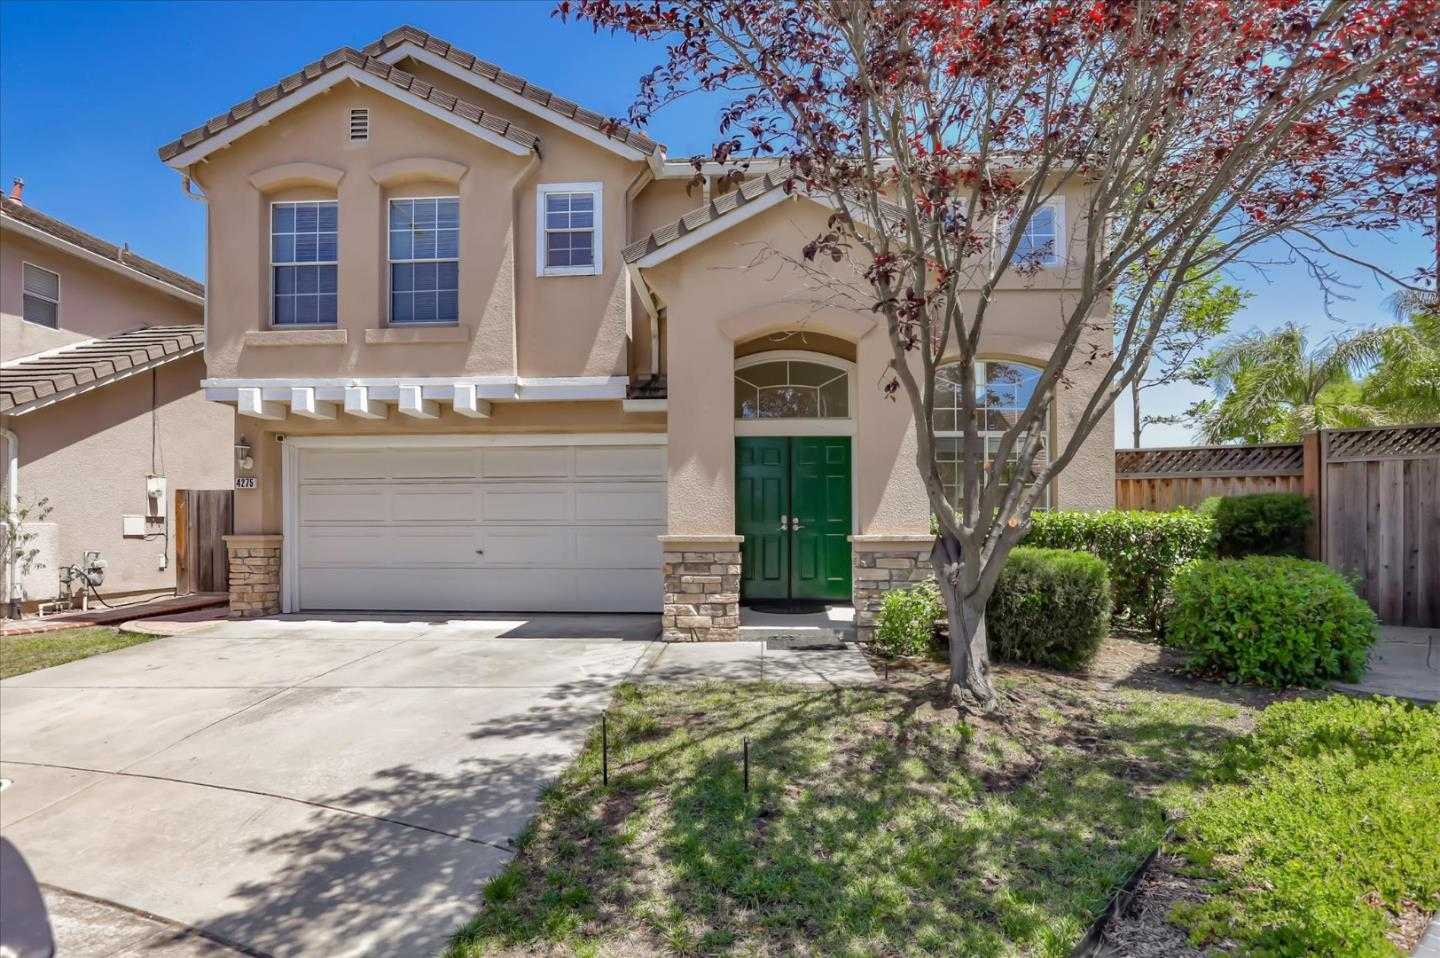 $1,625,000 - 3Br/3Ba -  for Sale in San Jose